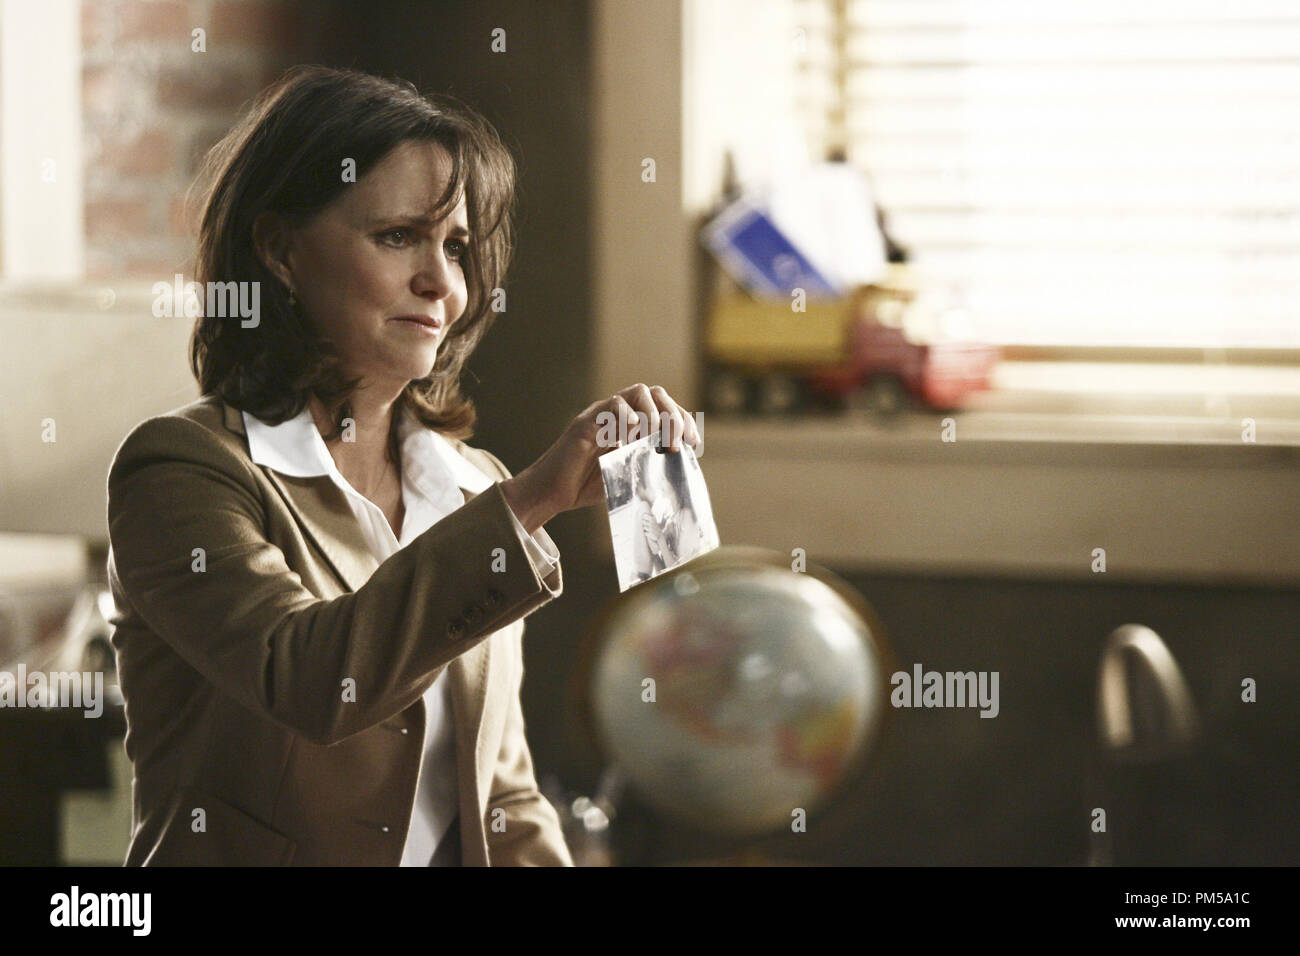 0bd17d76 Studio Publicity Still from 'Brothers & Sisters' Sally Field 2006 Photo  credit: Scott